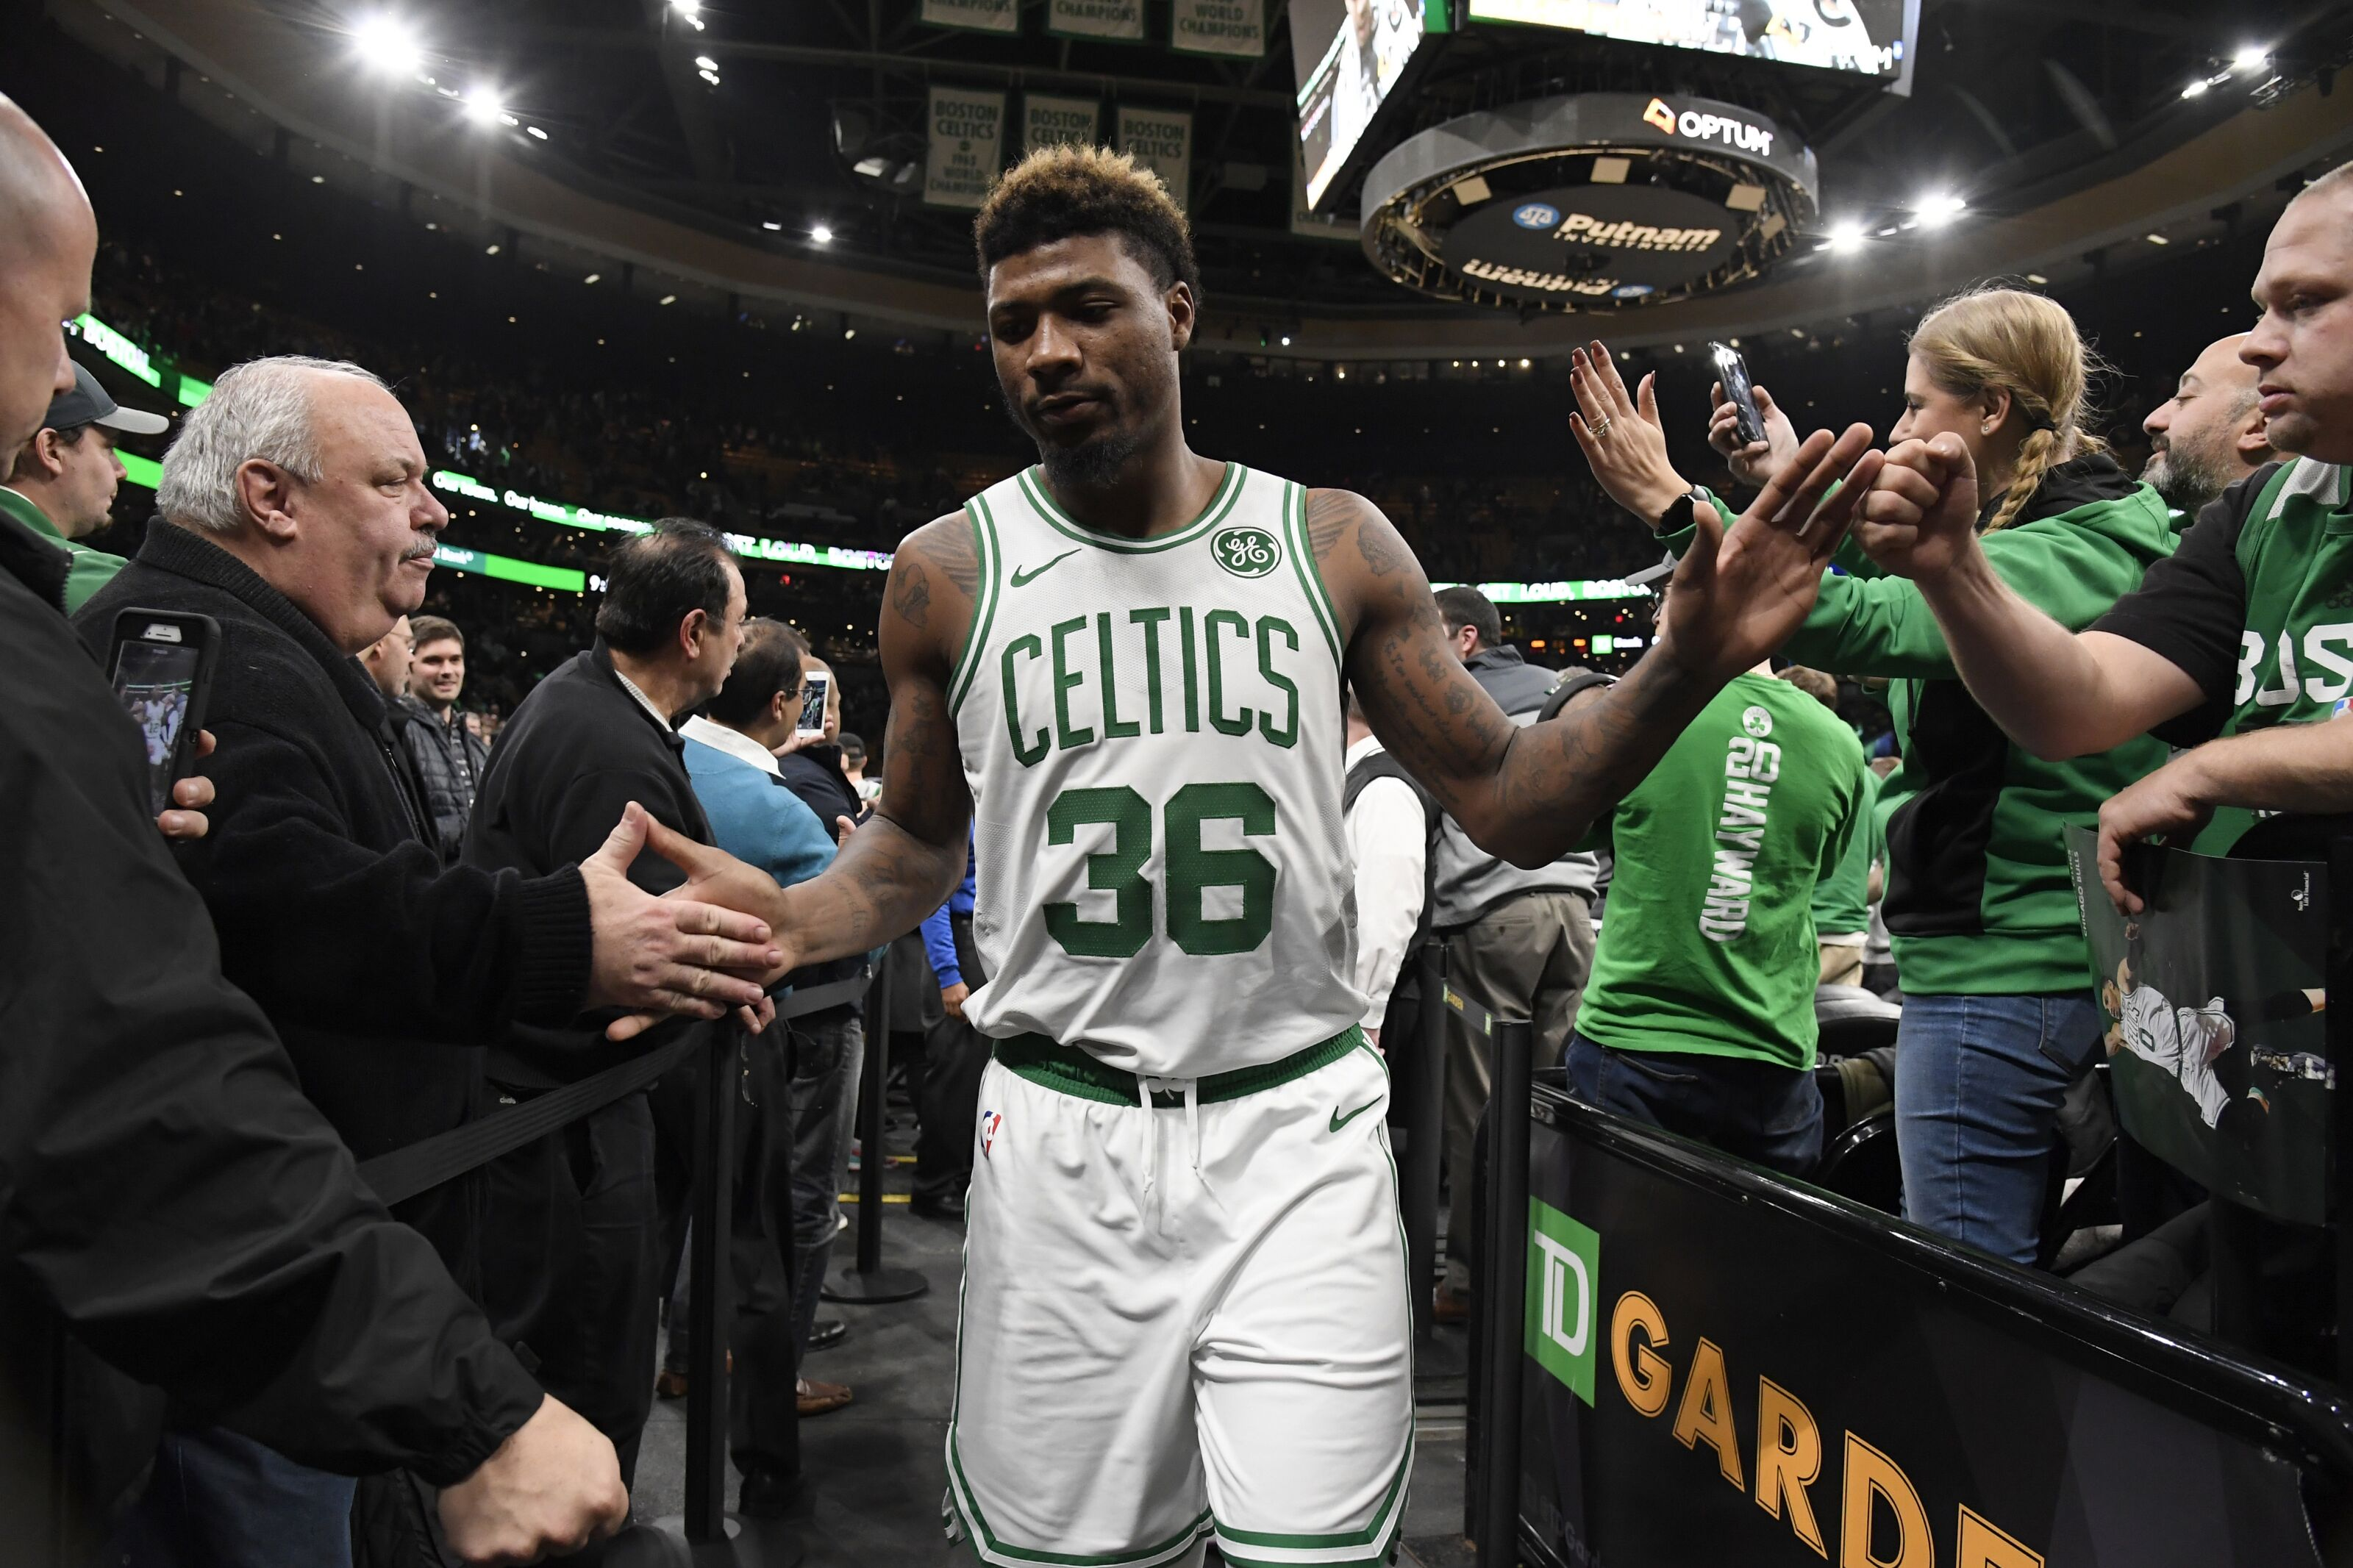 f9aea3cc2 Should The Boston Celtics Keep Marcus Smart in the Starting Lineup